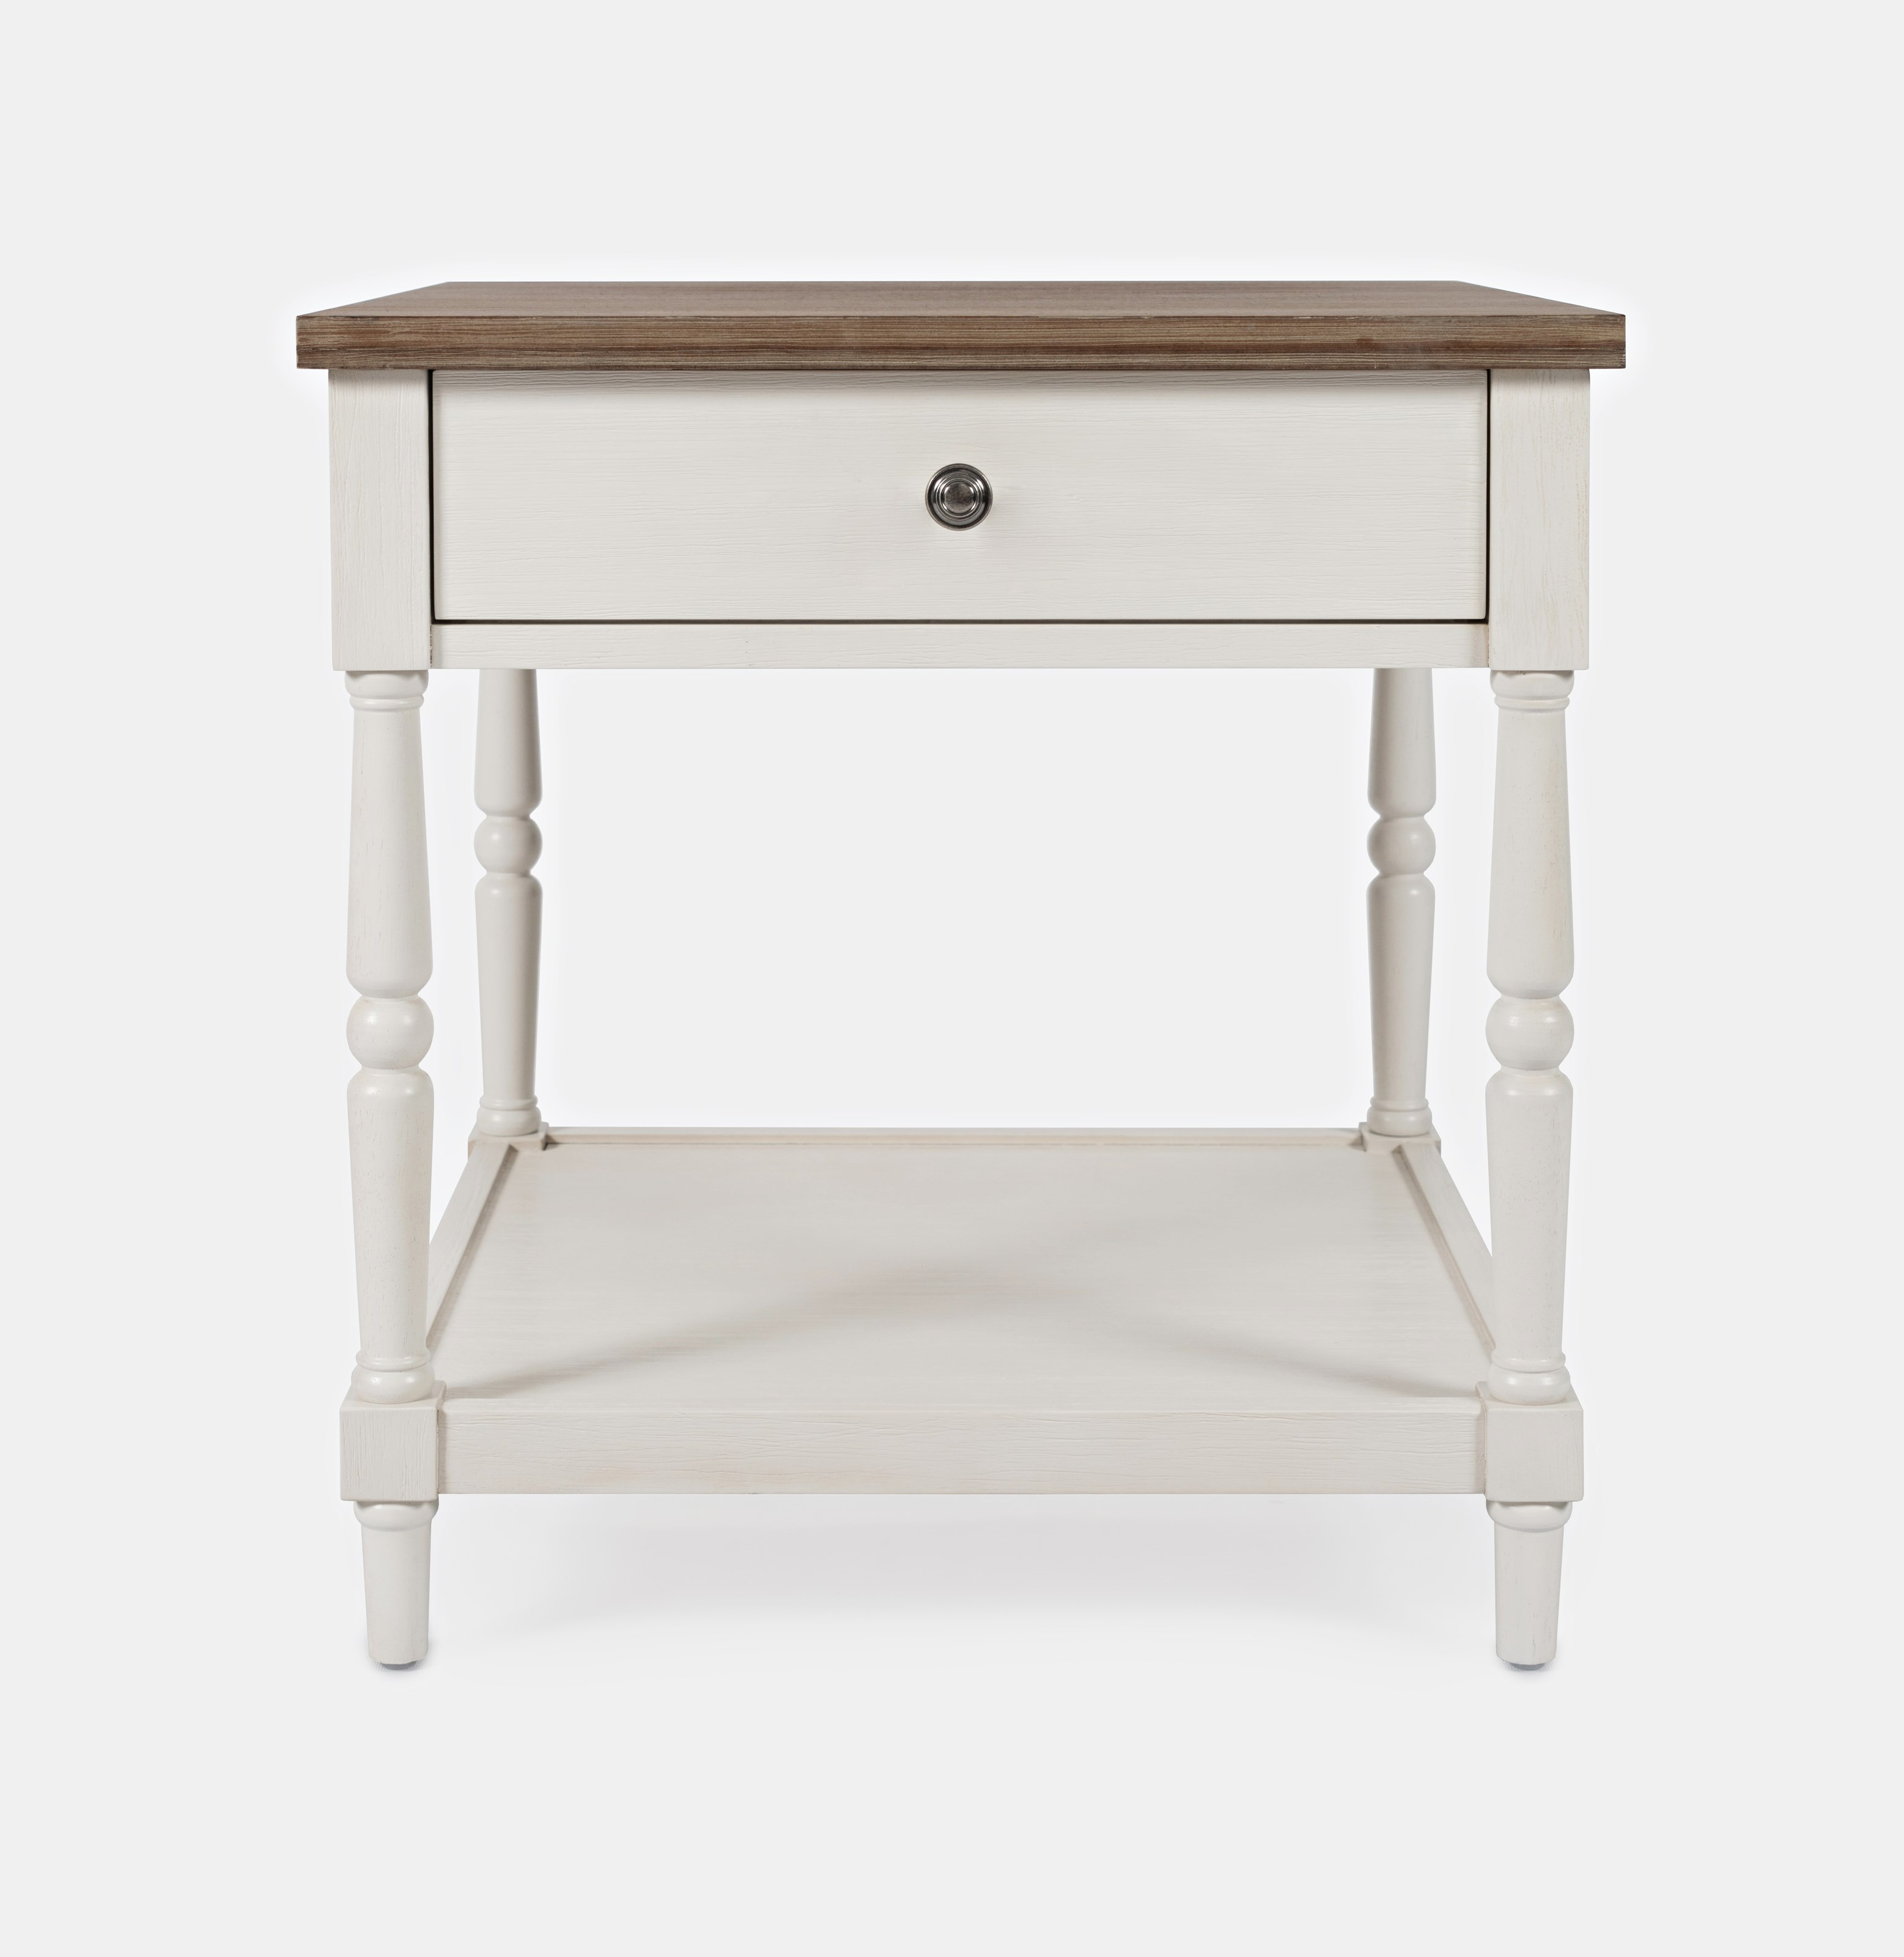 Grafton Farms End Table with Drawer by Jofran at Jofran